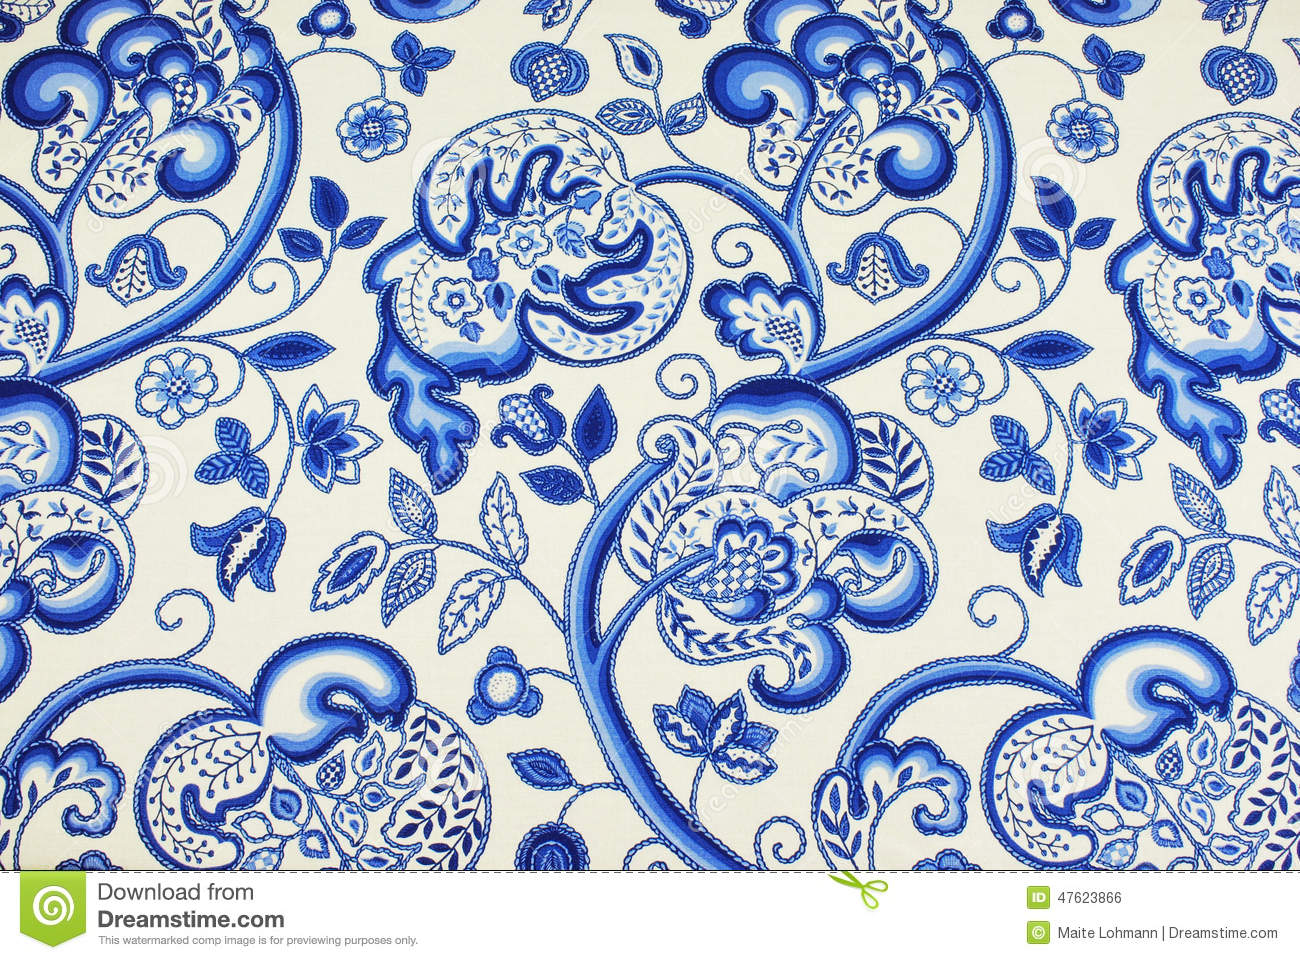 Mandala Flower Drawing also Dinosaur Skin as well Stock Photo Jacobean Patterned Fabric Cotton Traditional Pattern Blue White Image47623866 besides Diy Concrete Countertop Kitchen Makeover together with Takedown Damascus Dagger Feather Pattern Damascus And Mamooth Ivory. on feather pattern